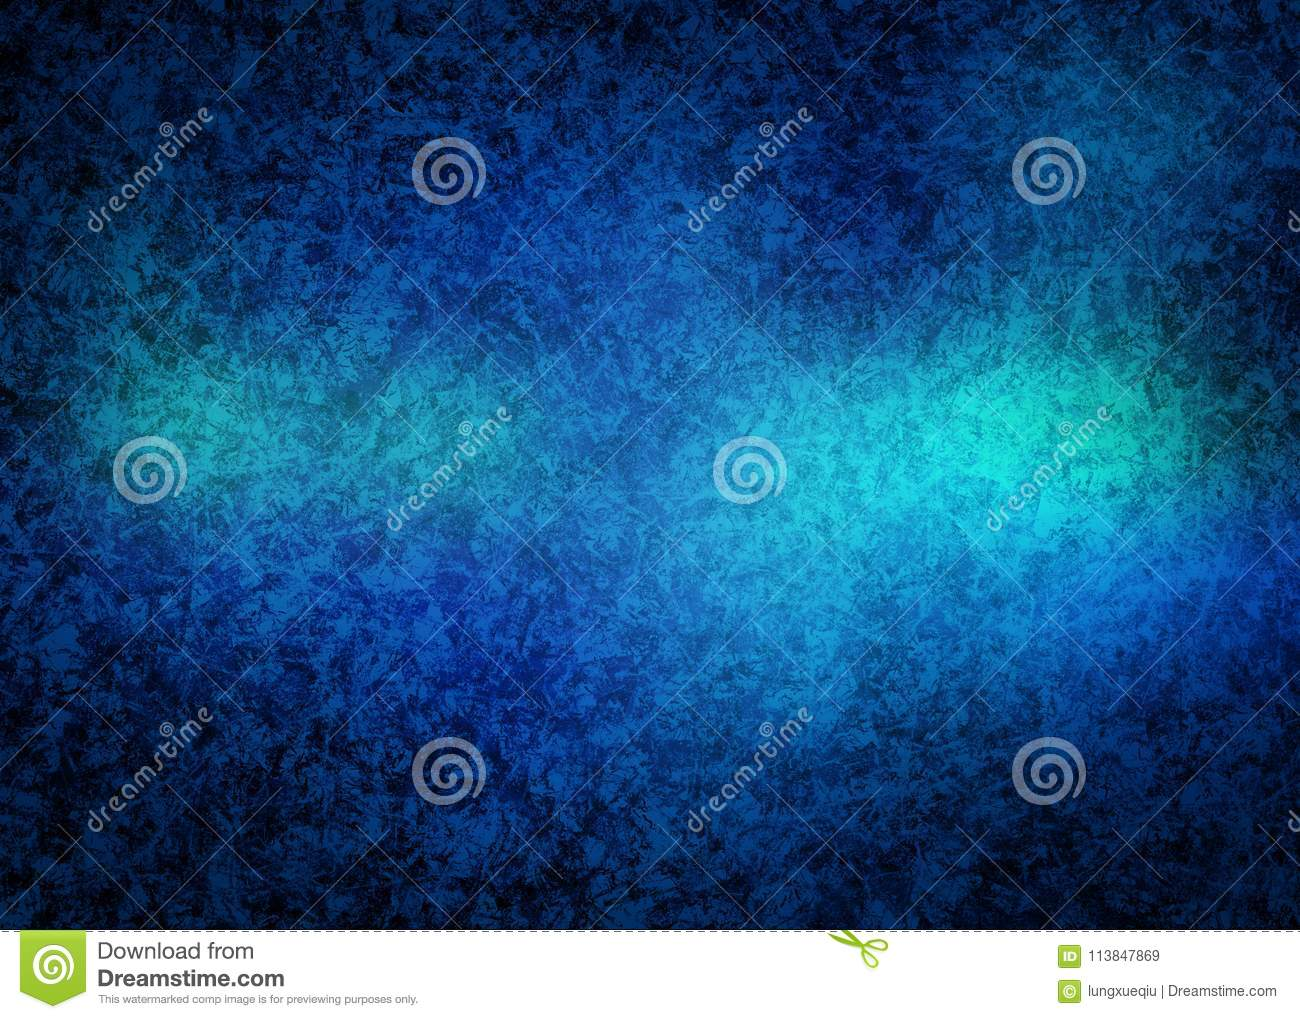 Icy Cold and Old Blue Grunge Distort Rusty Abstract Pattern Texture Background Wallpaper